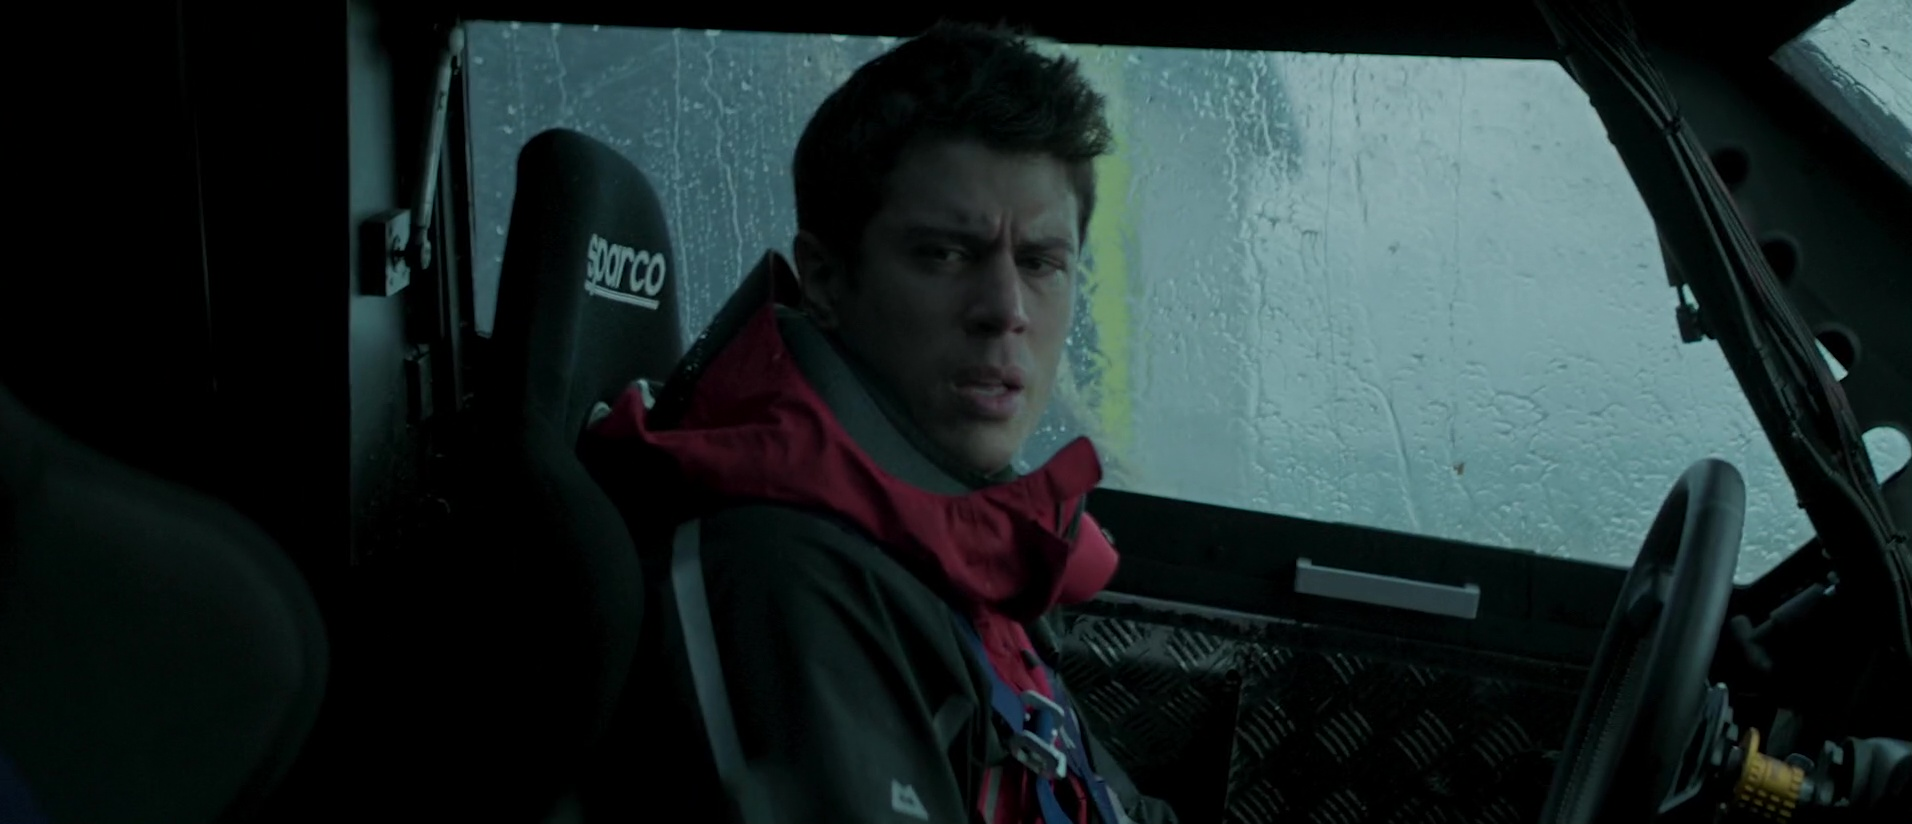 What To Do With Used Car Seats >> Sparco Car Seat Used by Toby Kebbell in The Hurricane ...